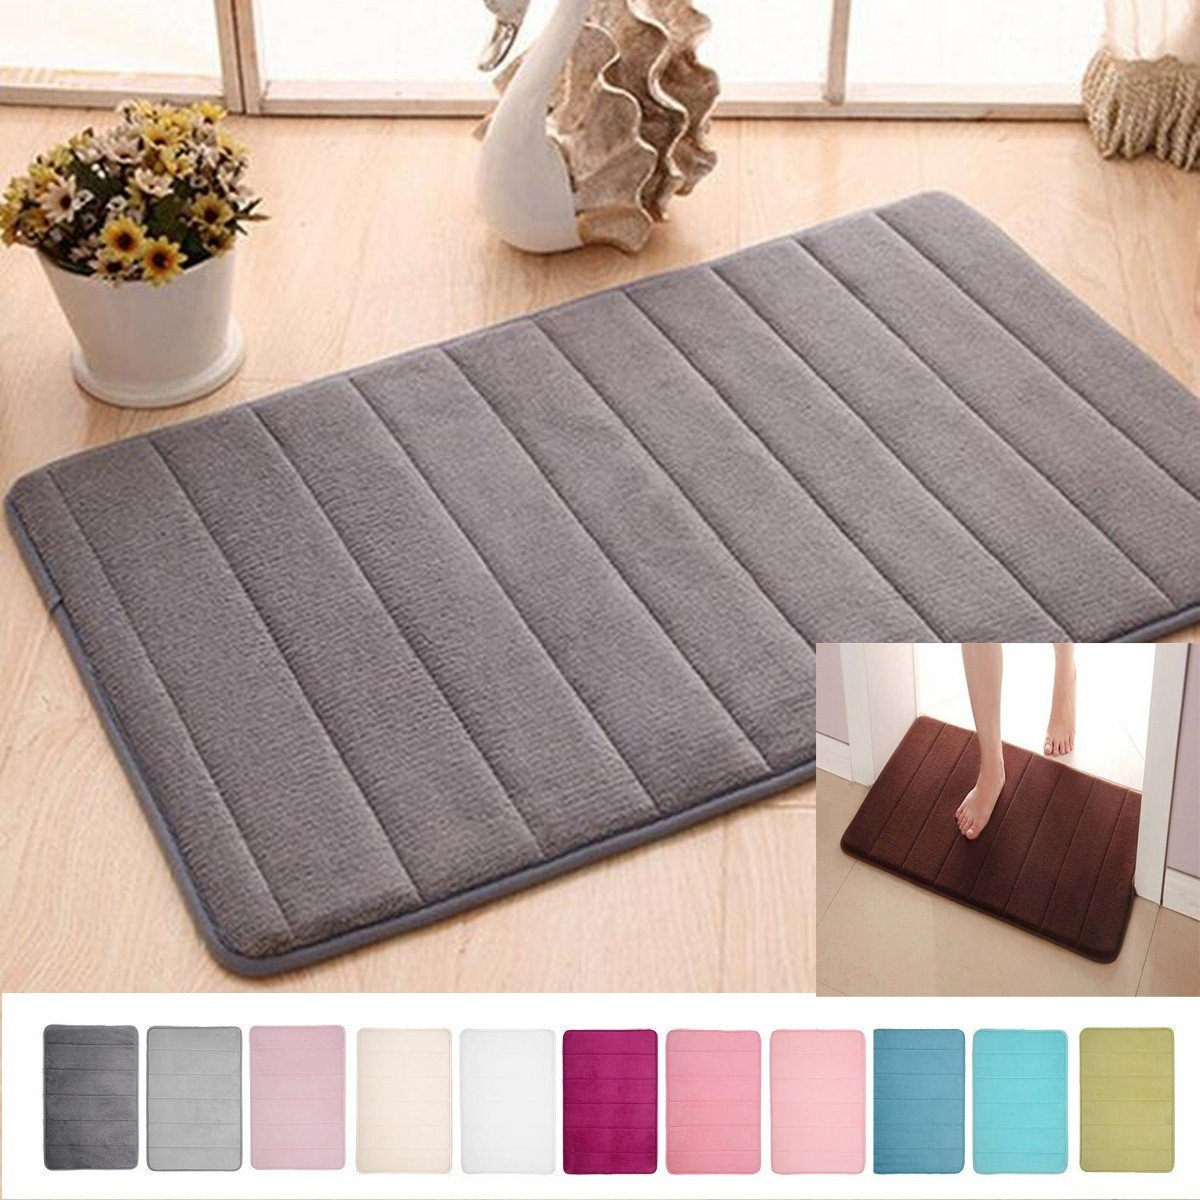 Soft Rugs for Bedroom Beautiful Details About Memory Foam Absorbent soft Floor Mats Non Slip Rugs Bath Bathroom Bedroom Carpet